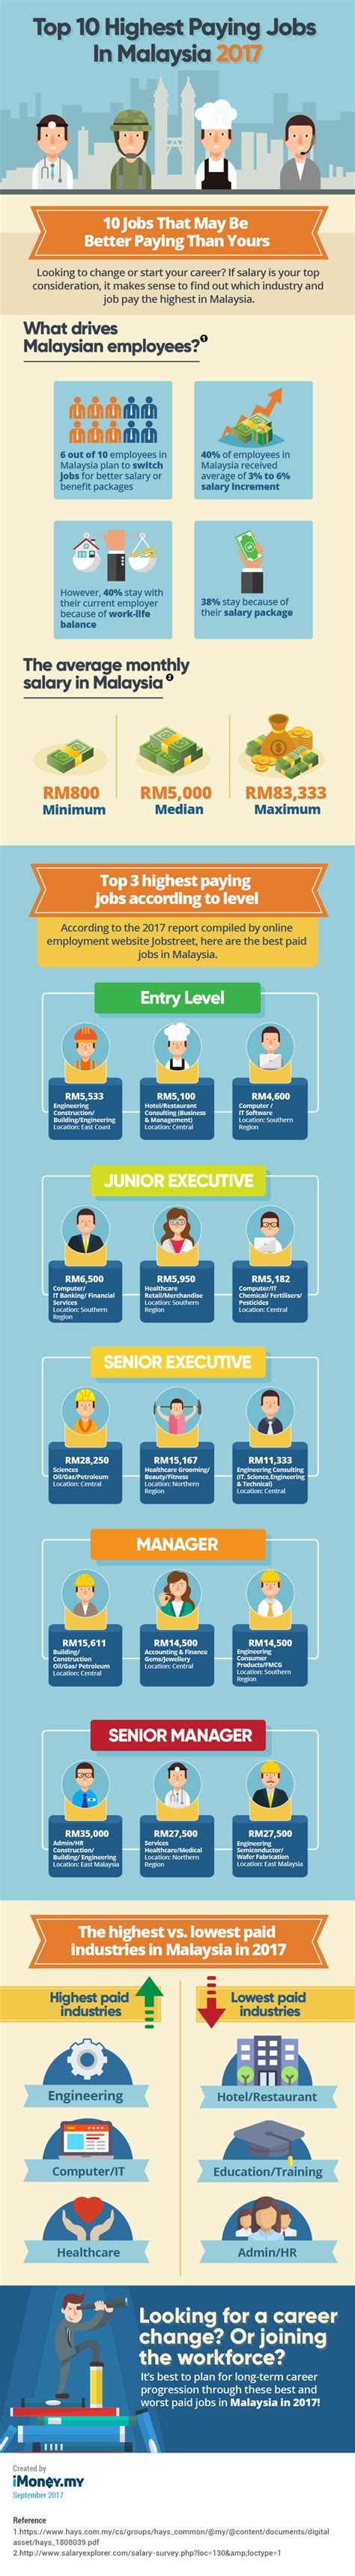 best paying jobs top 10 highest paying jobs in malaysia 2017